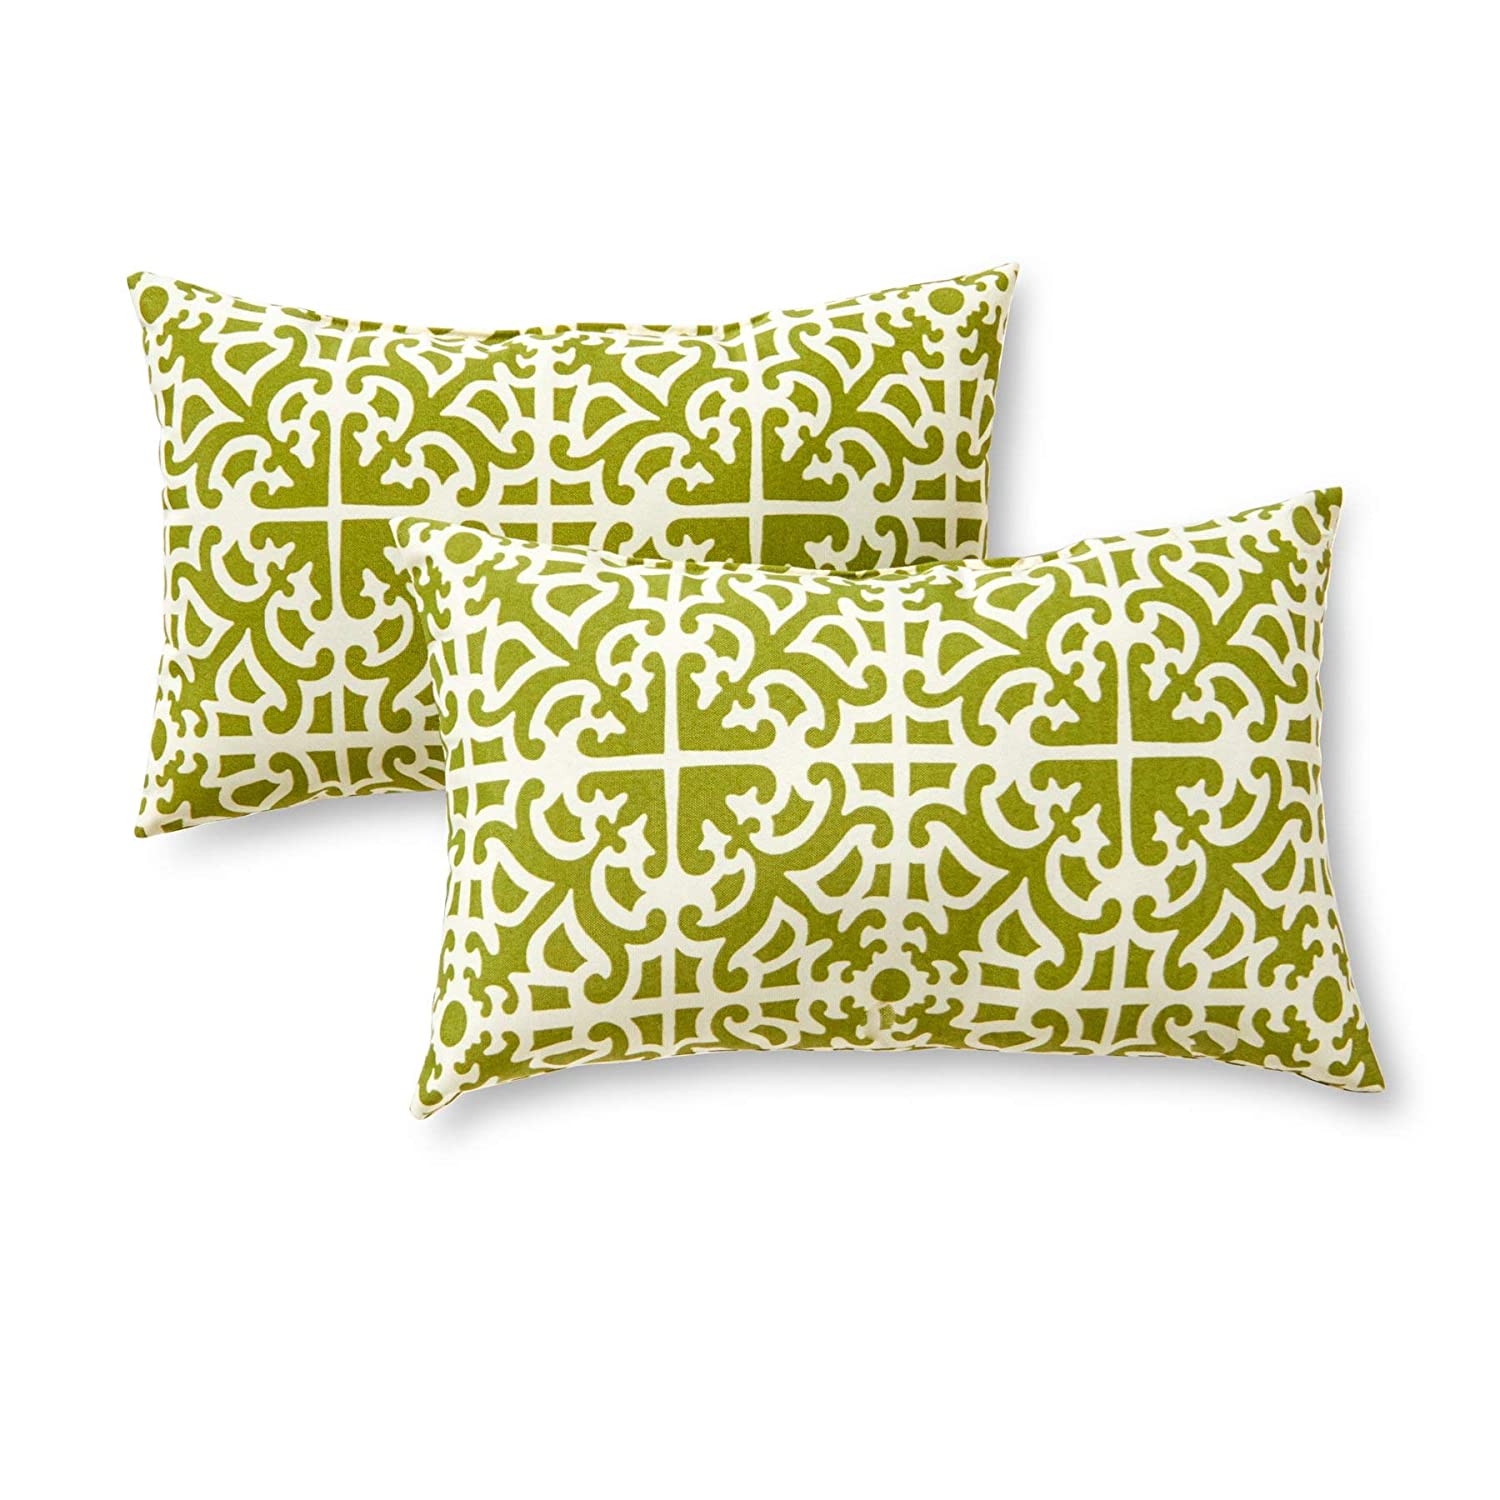 Greendale Home Fashions Rectangle Outdoor Accent Pillow (set of 2), Grass (Renewed)